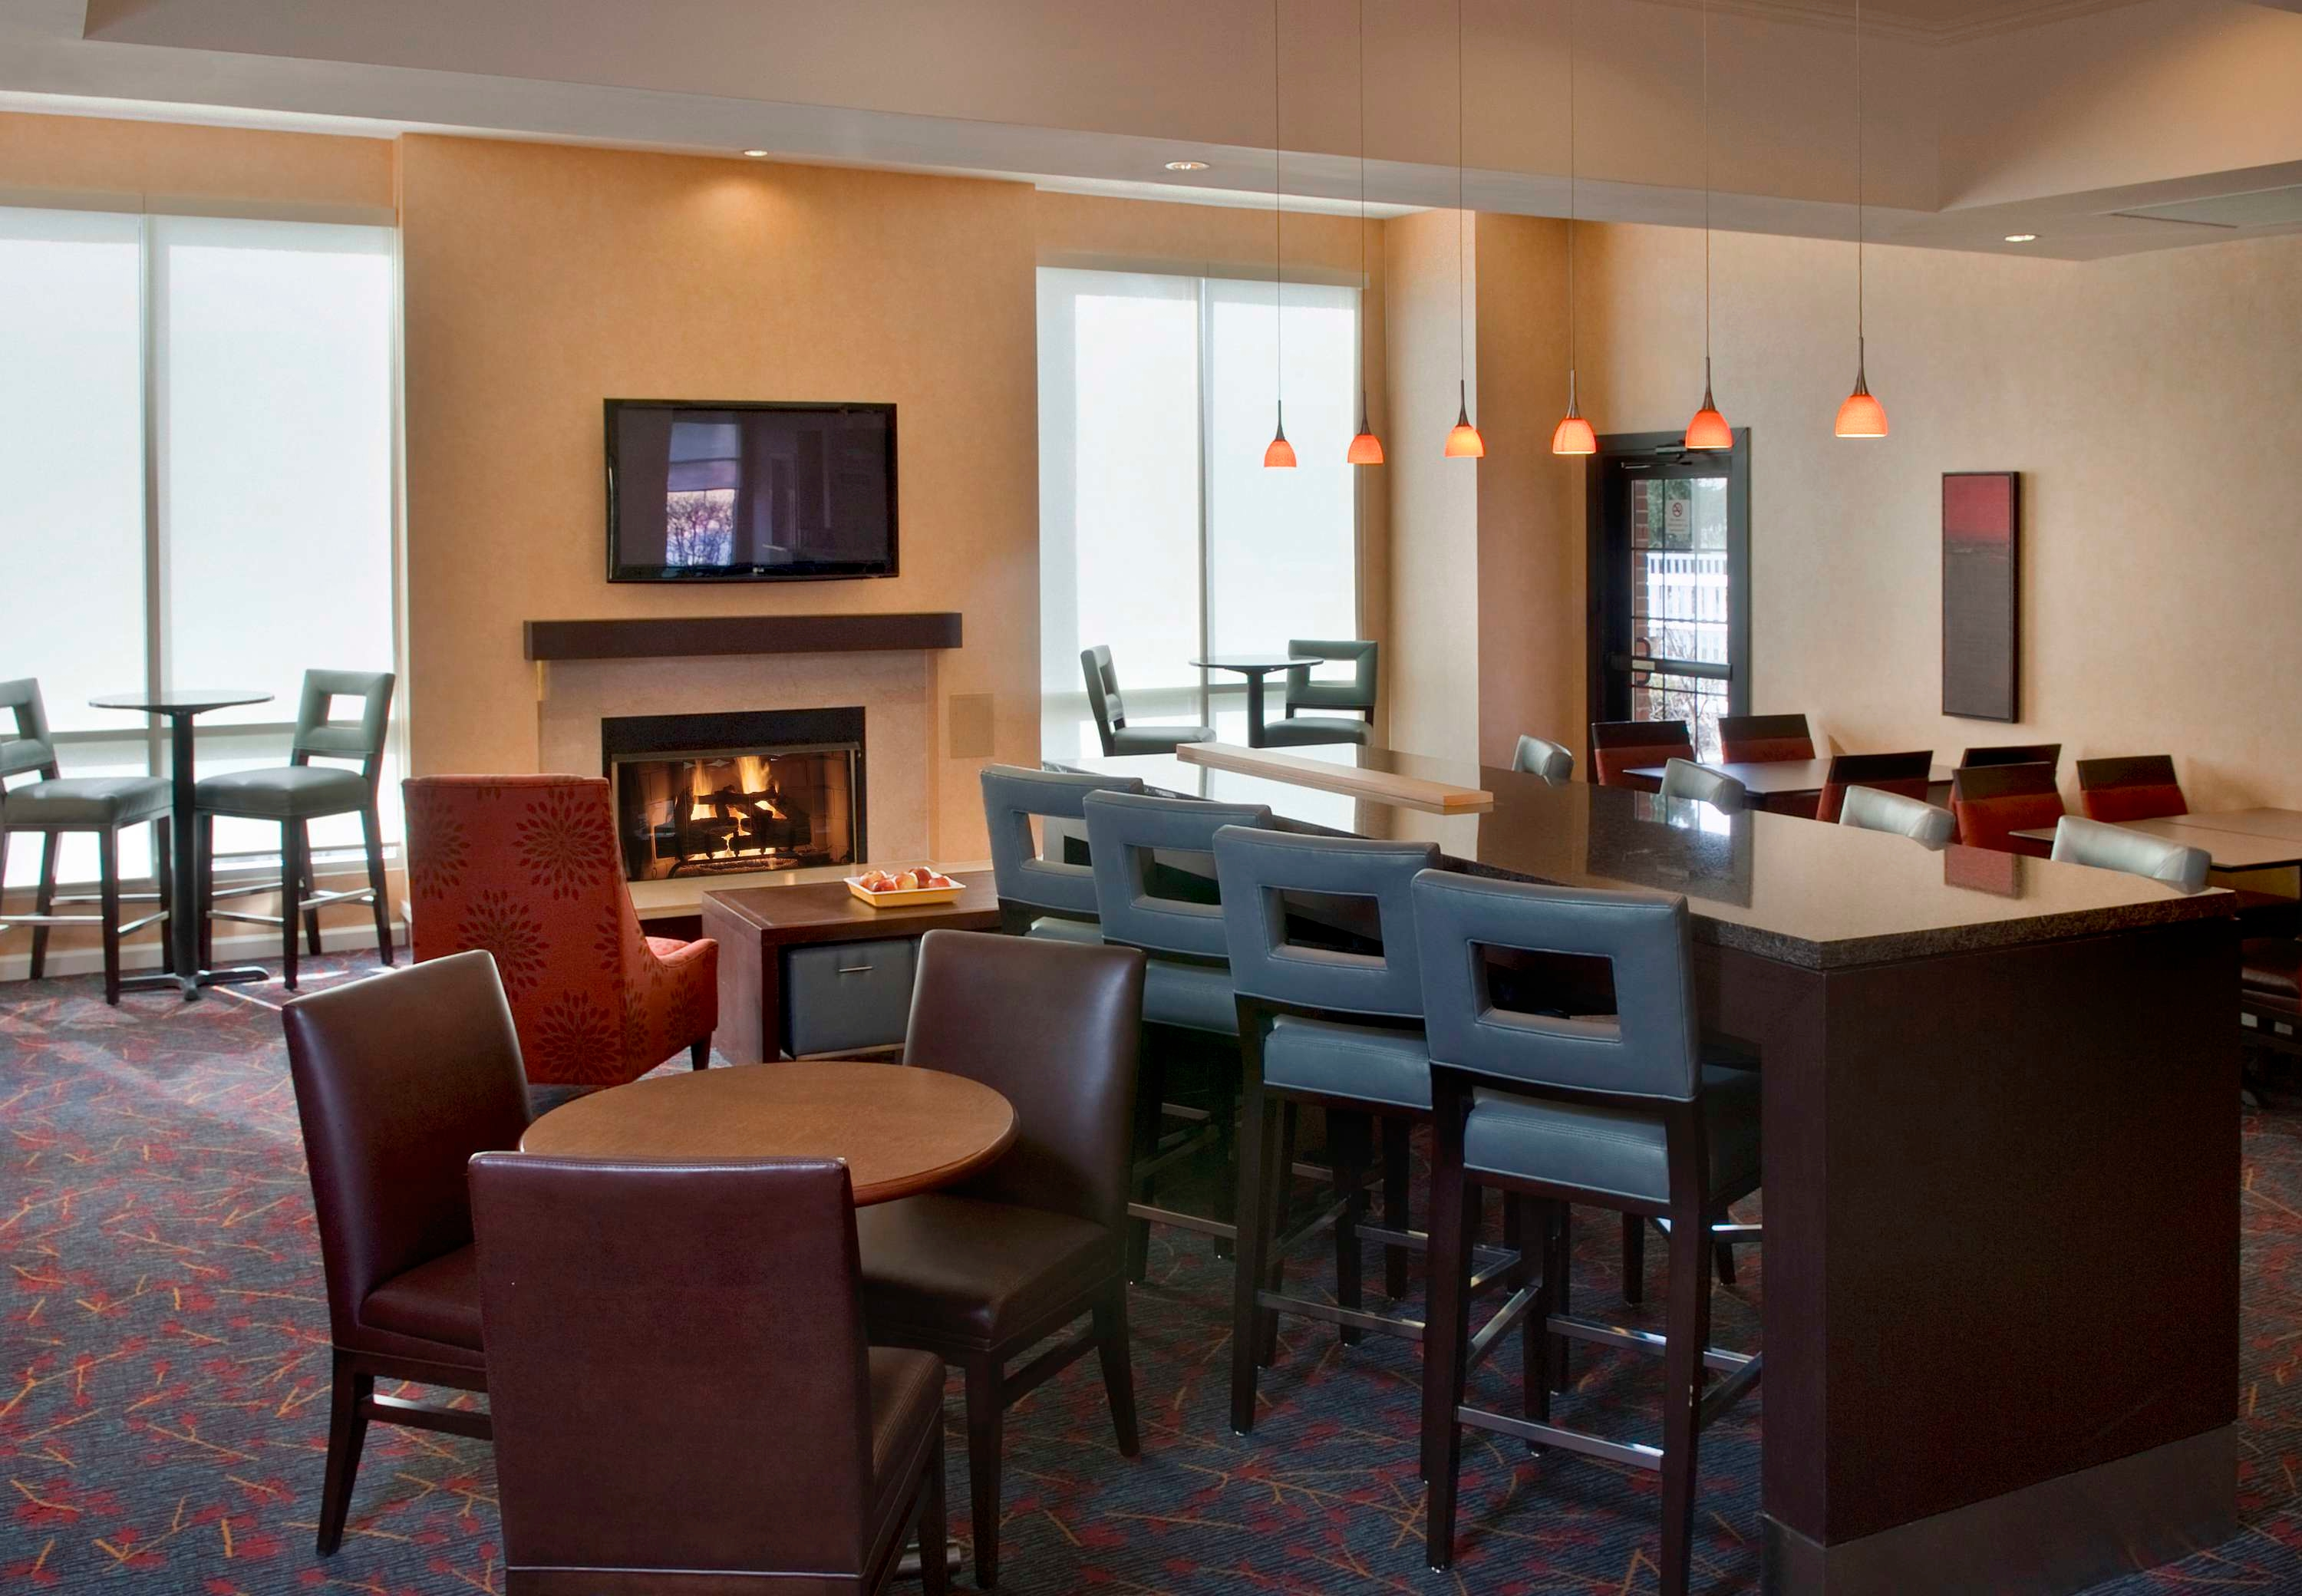 east syracuse Compare 20 hotels in east syracuse using 4894 real guest reviews earn free nights and get our price guarantee - booking has never been easier on hotelscom.